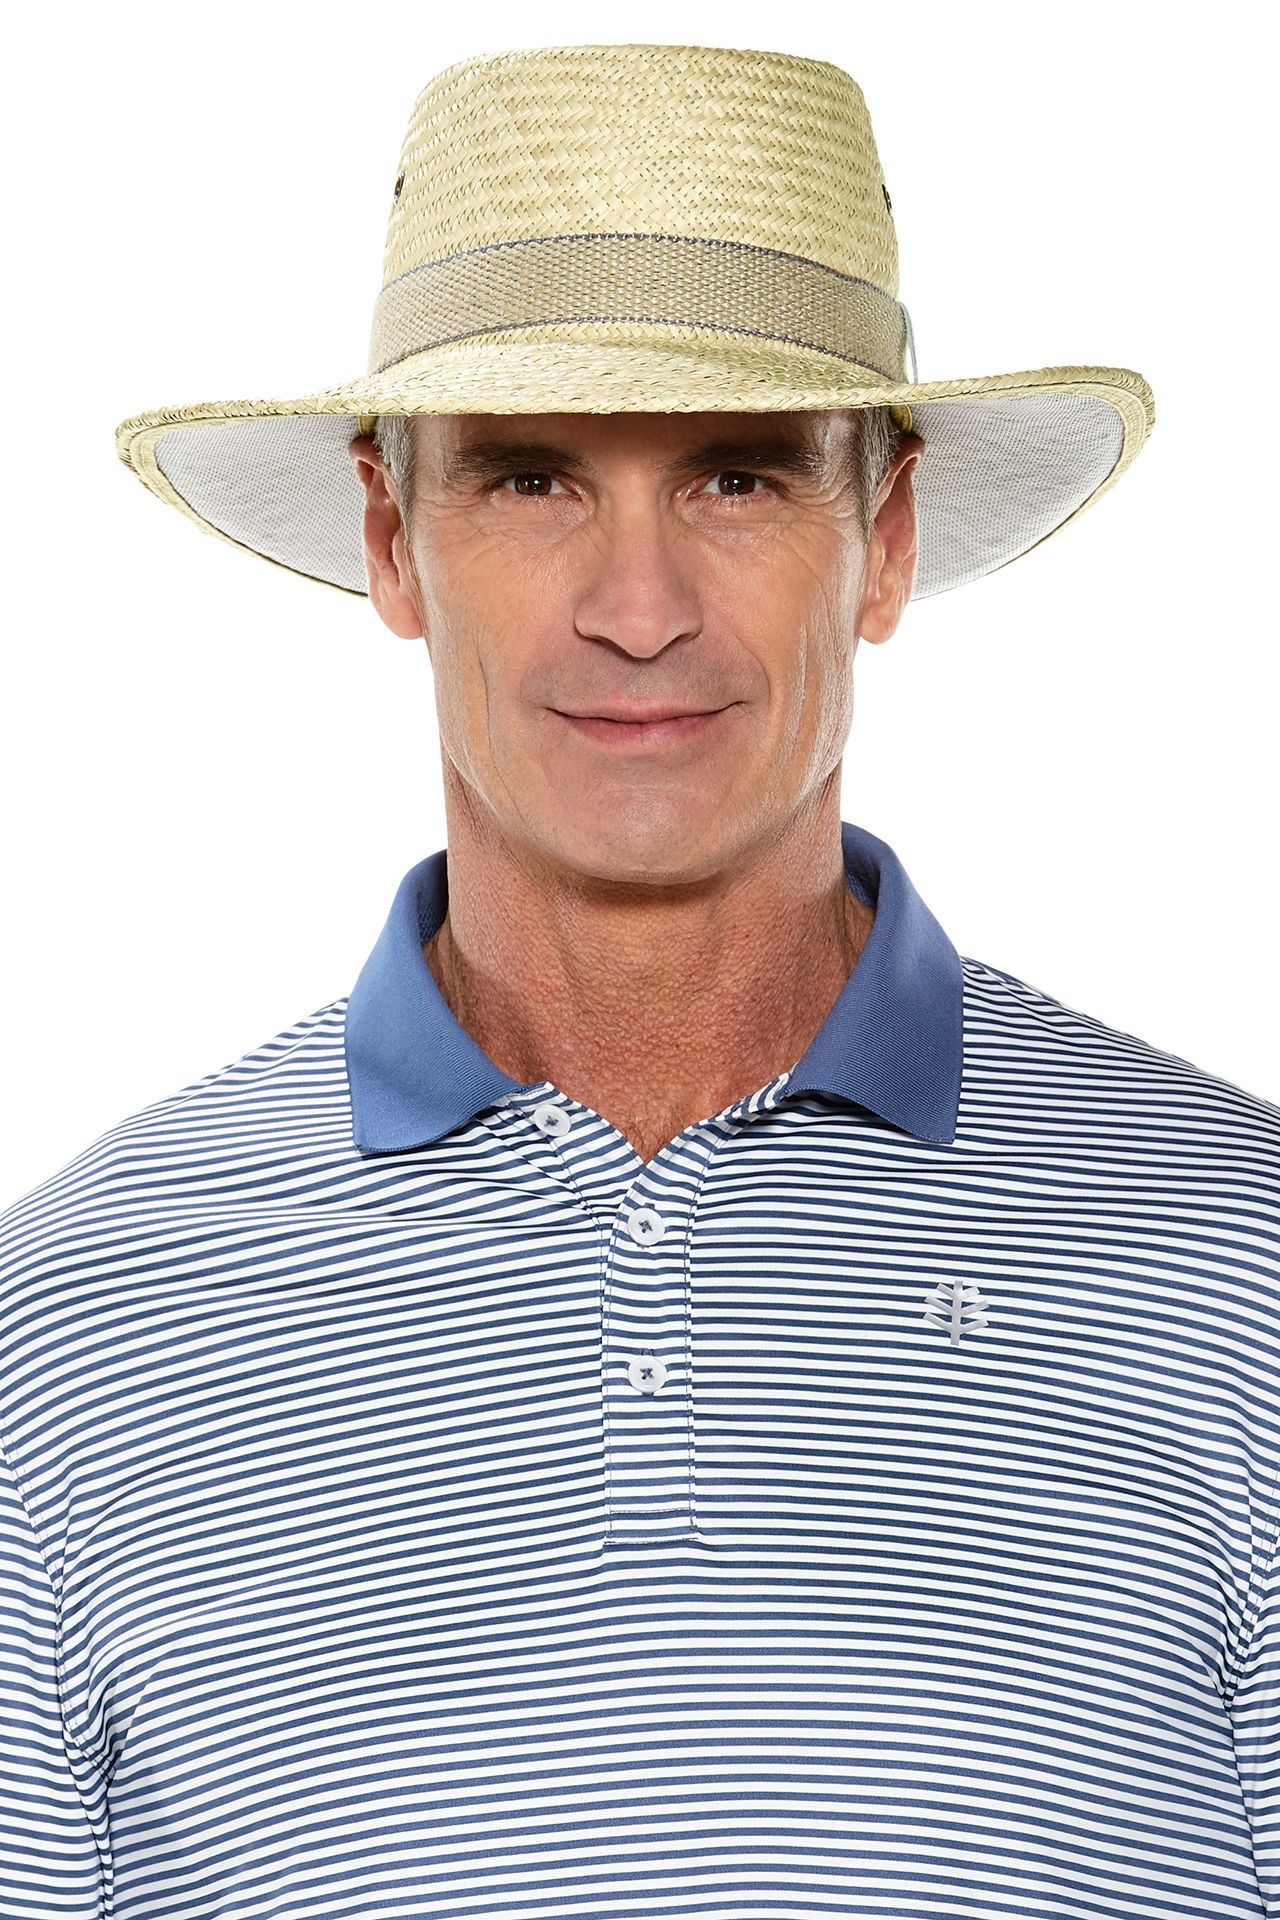 Sun Hats UPF 50 Protection  Sun Protection Clothing - Coolibar ff9aec3c190